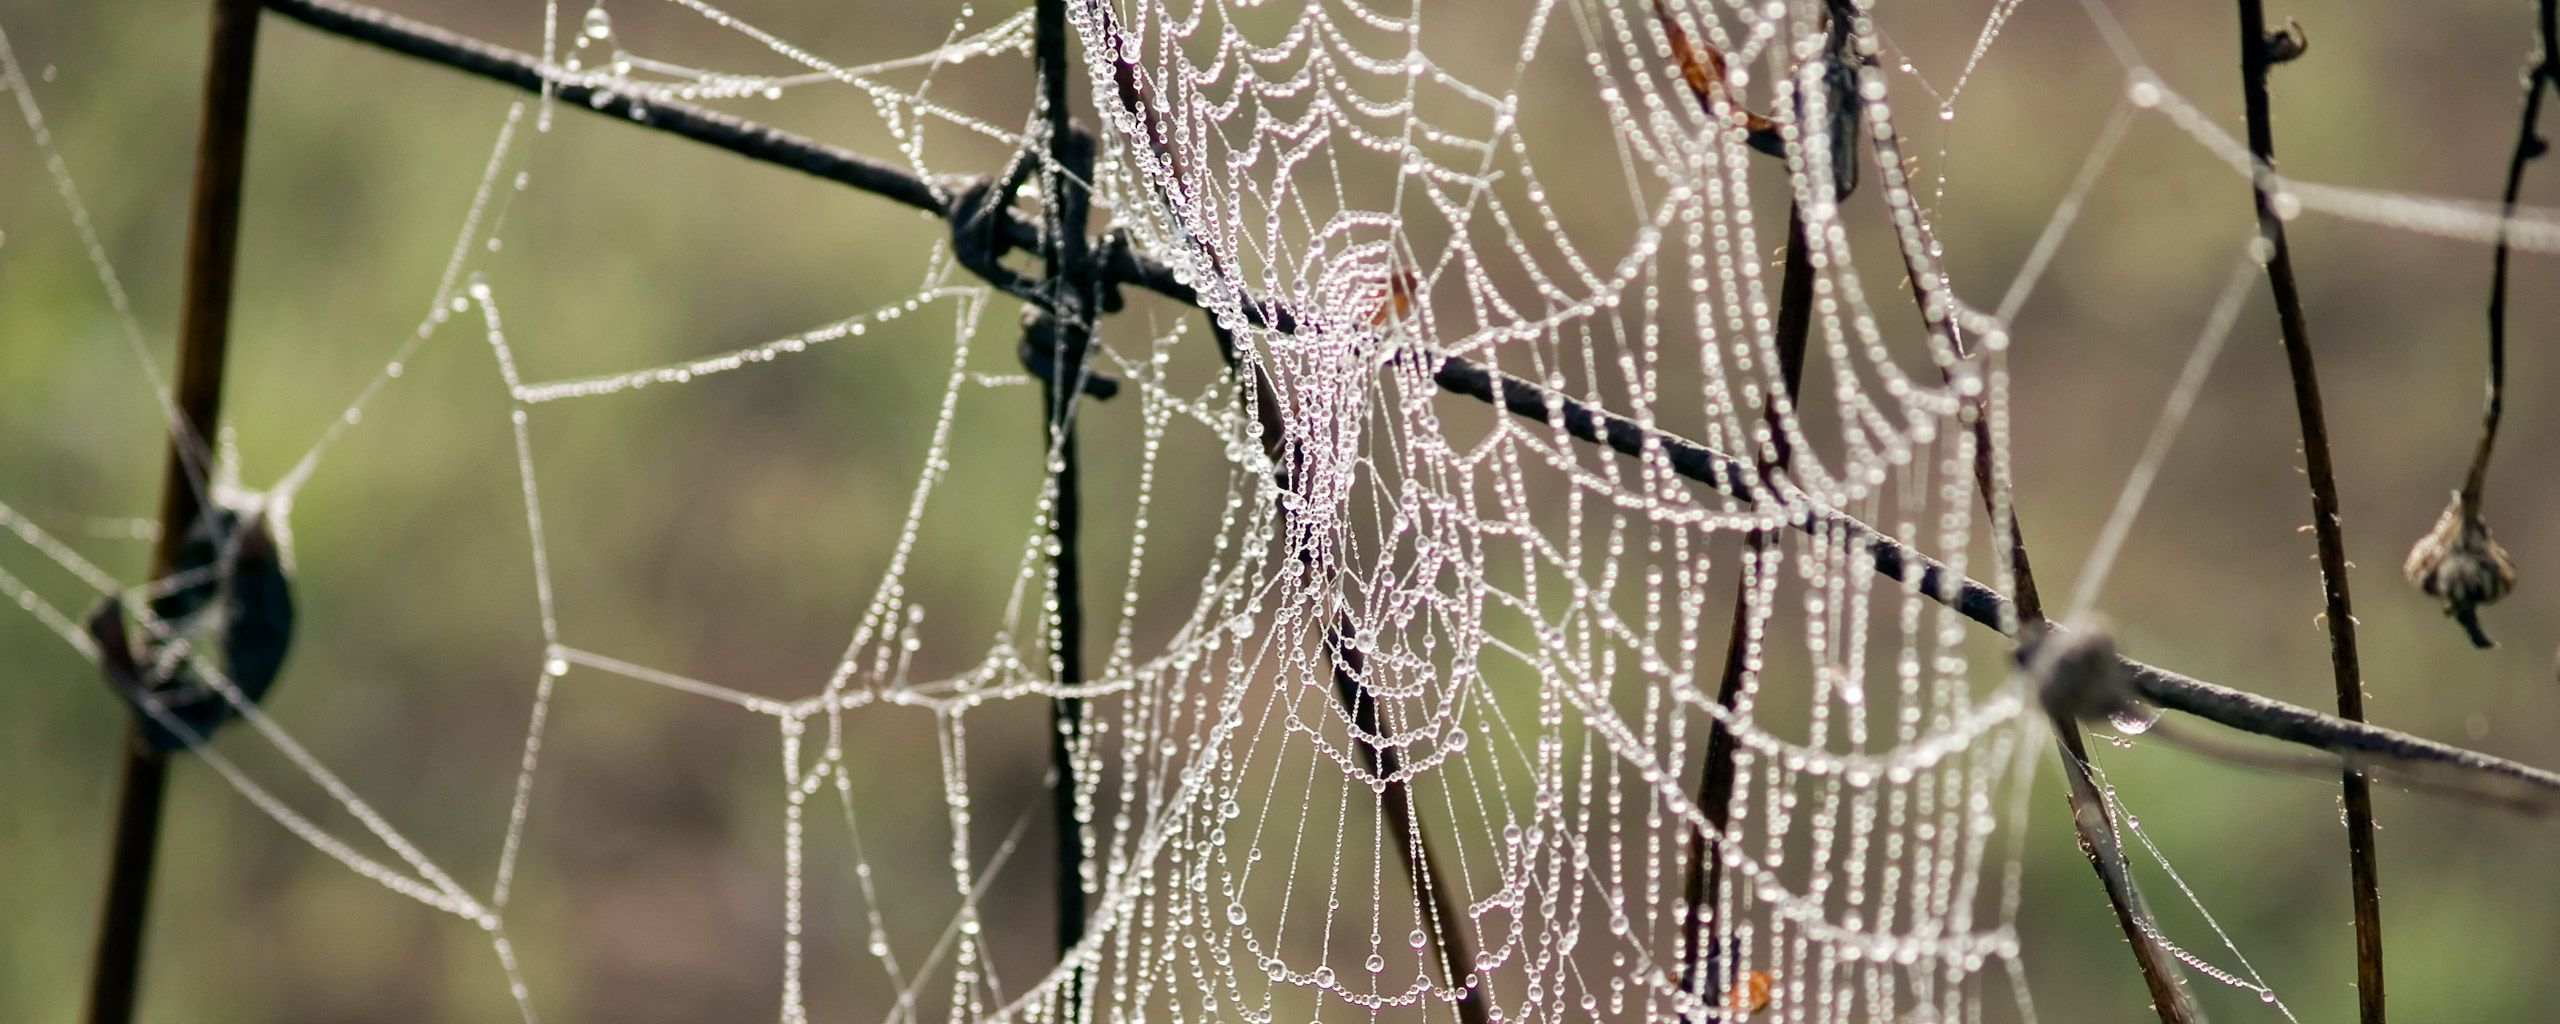 morning dew on spider HD Wallpaper